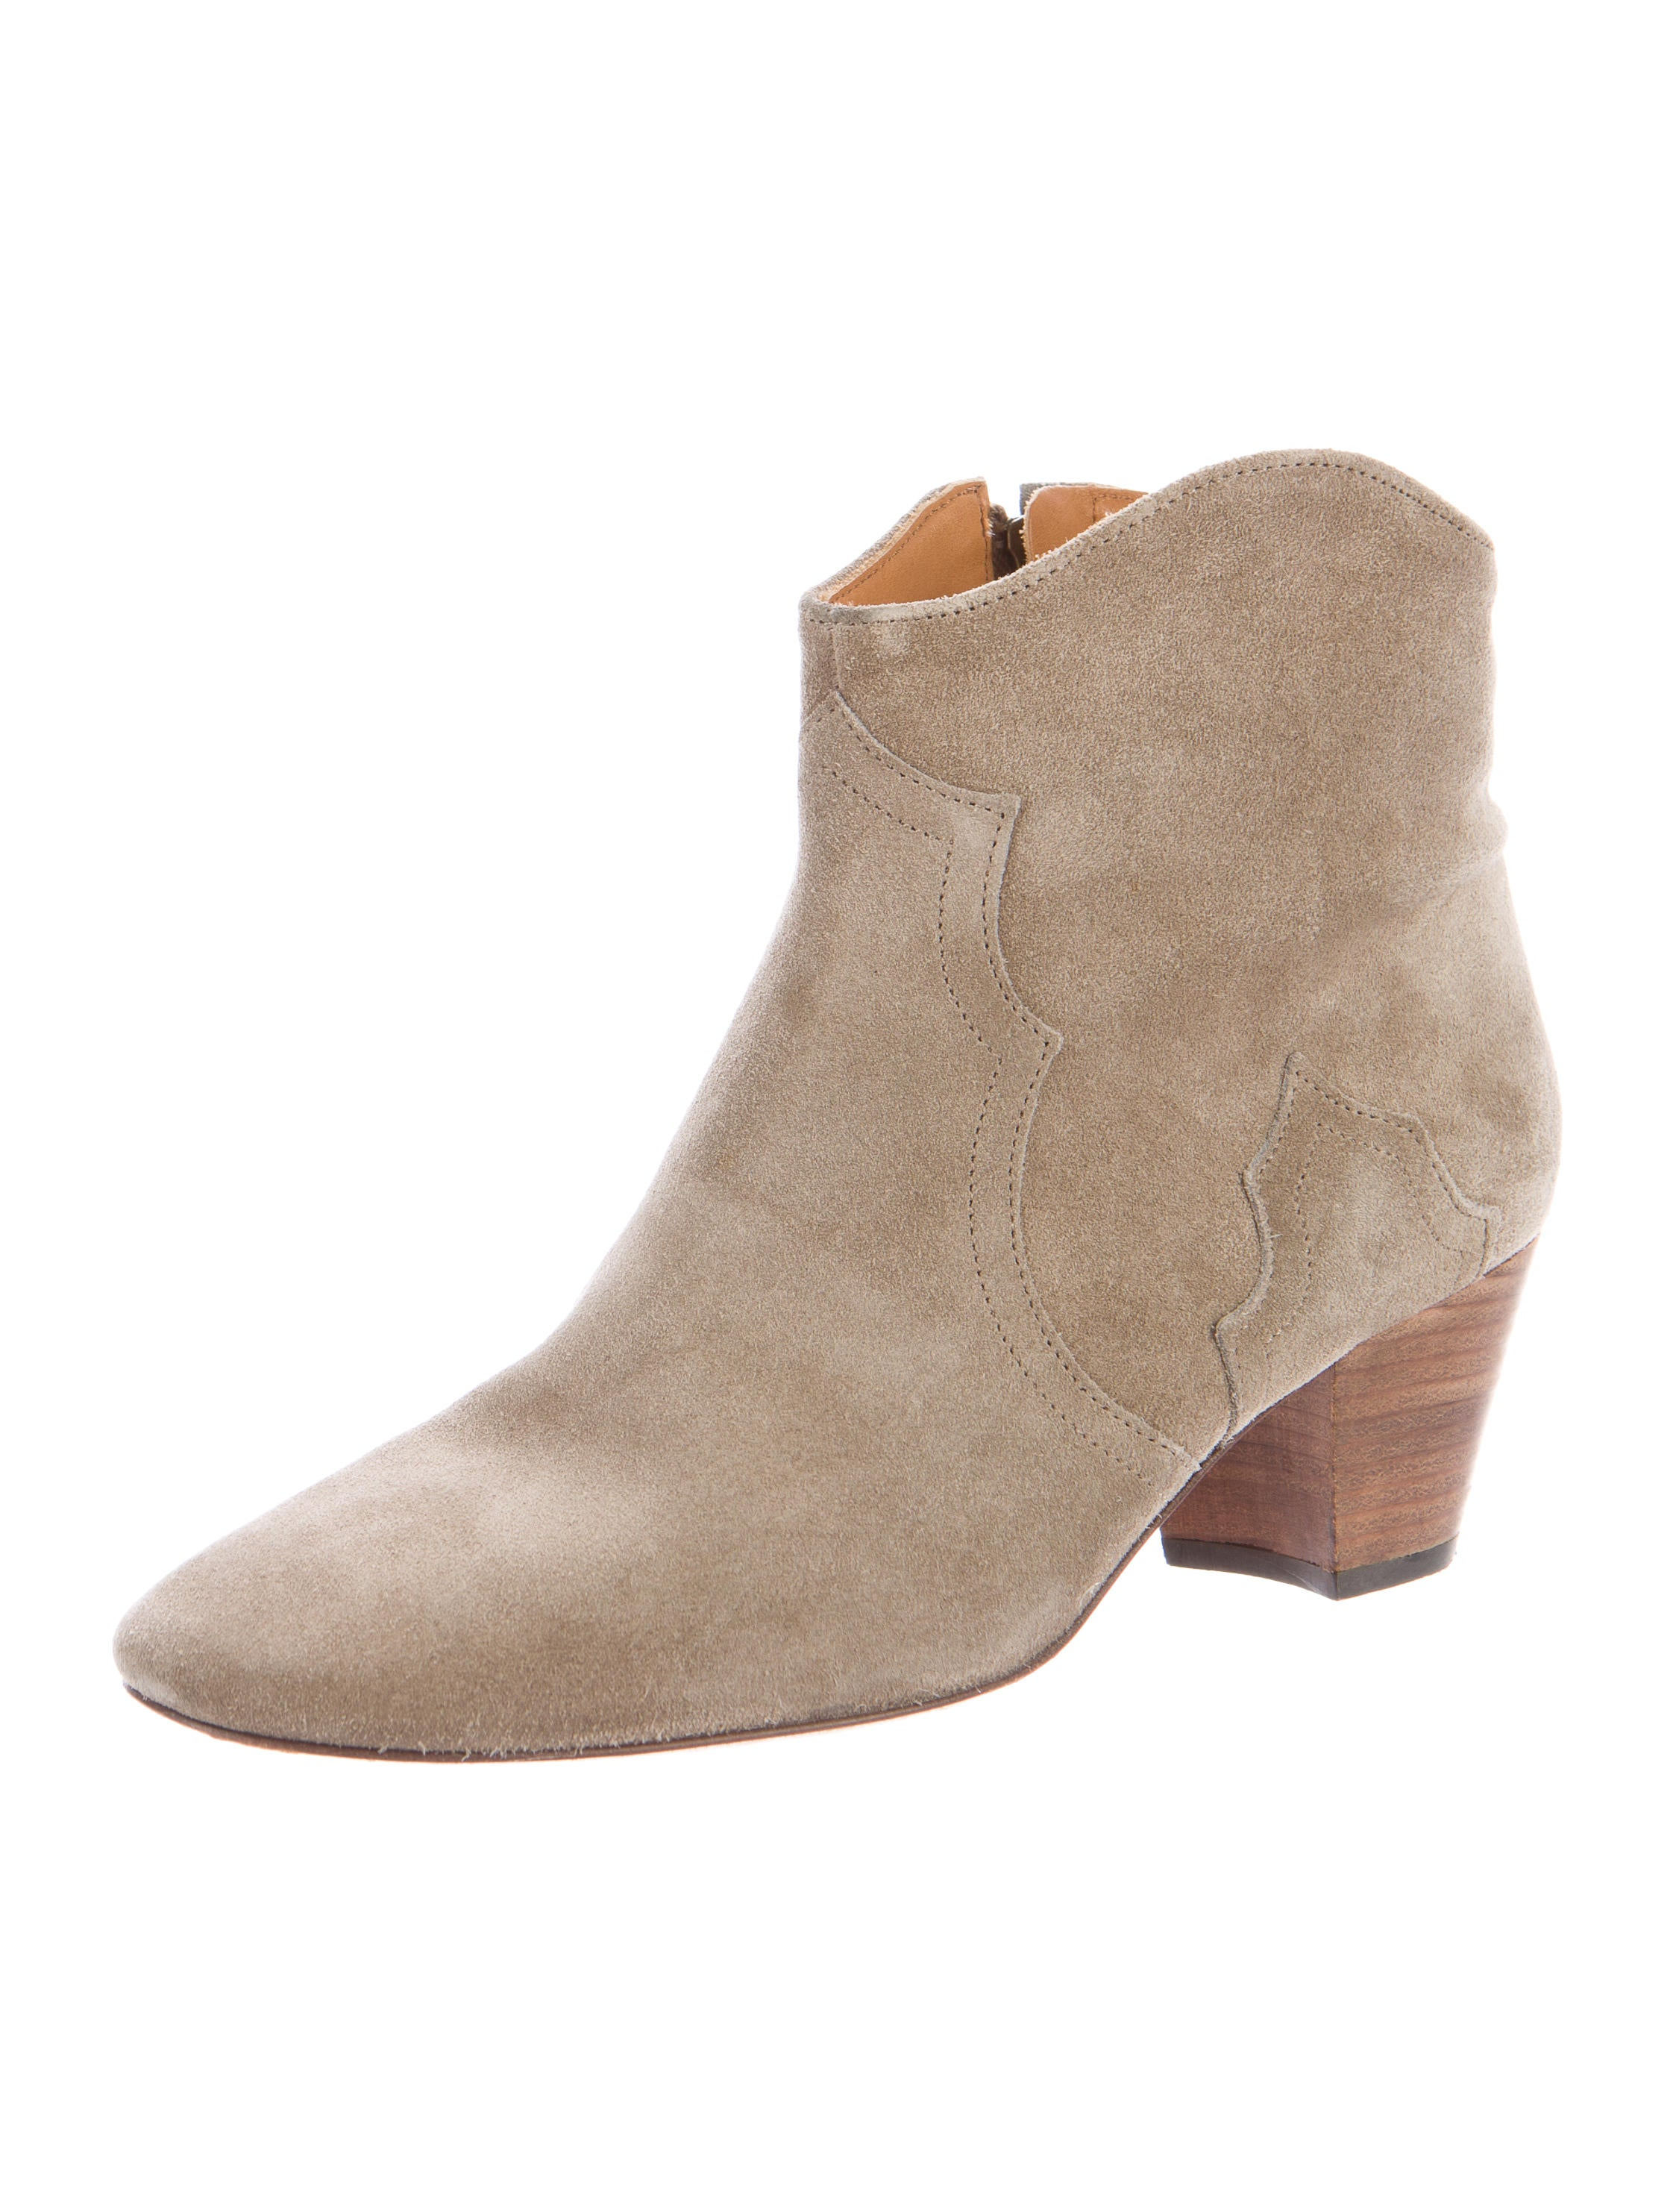 marant dicker suede ankle boots shoes isa40125